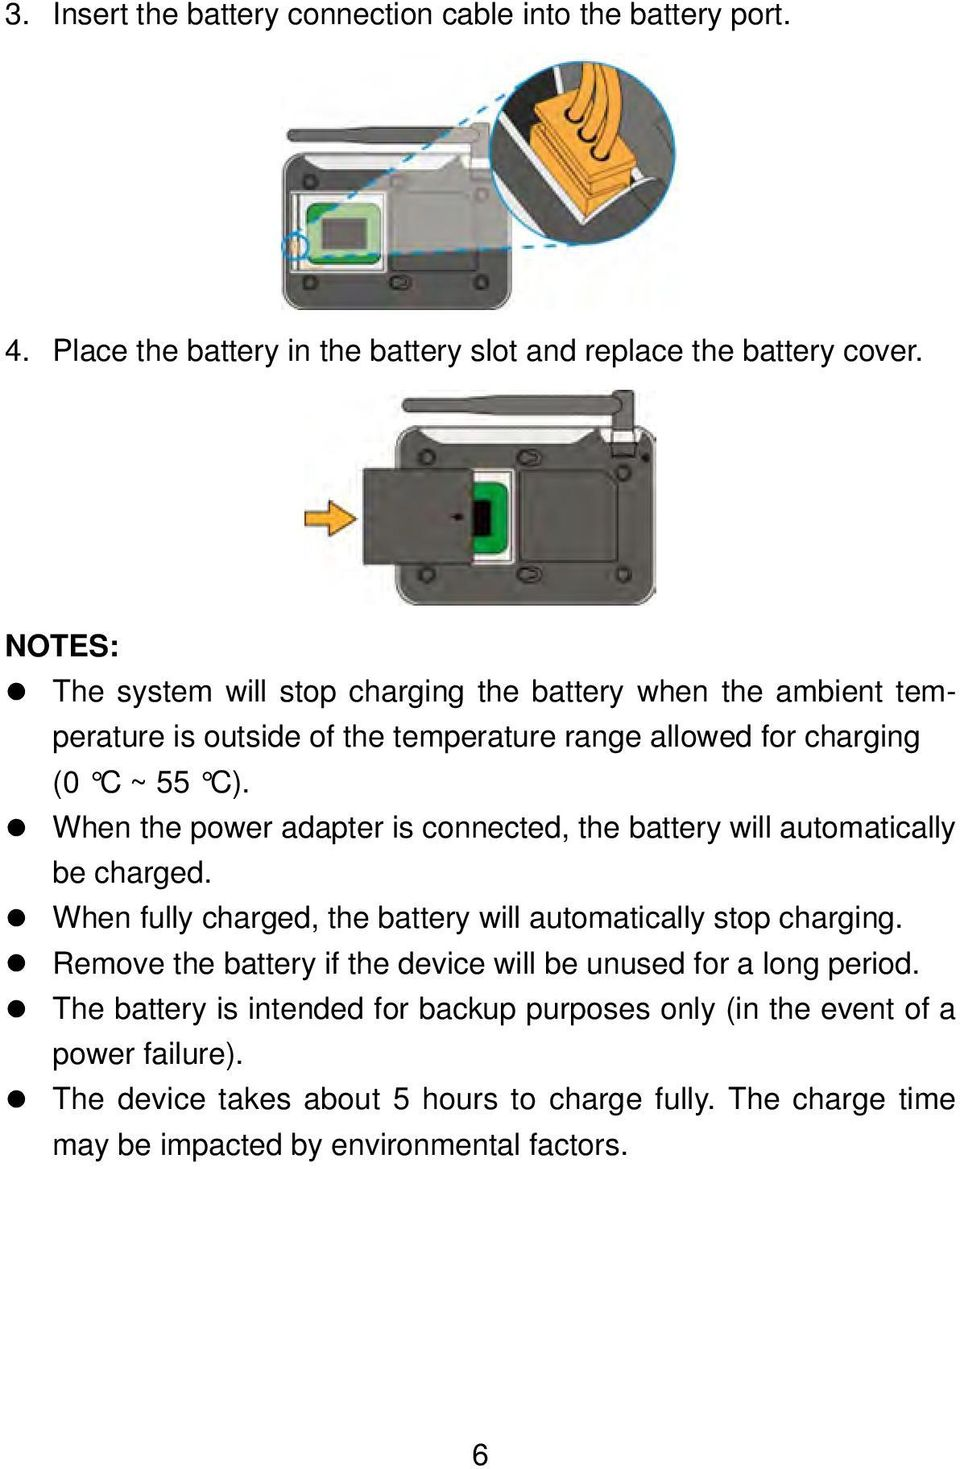 When the power adapter is connected, the battery will automatically be charged. When fully charged, the battery will automatically stop charging.